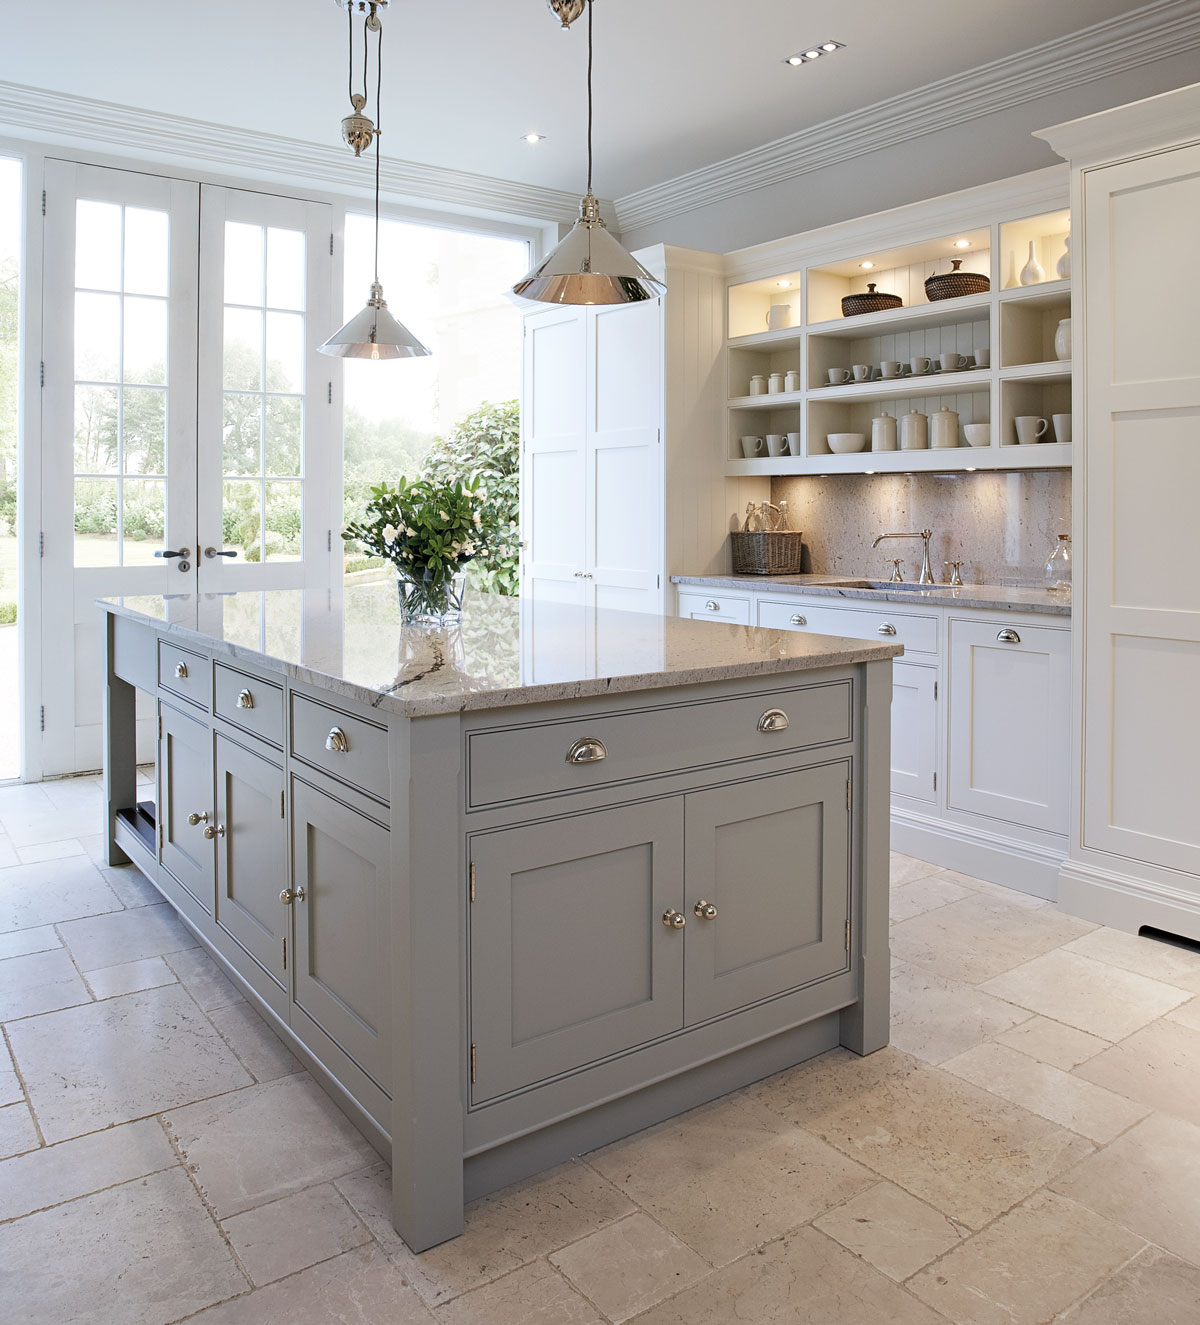 Lovely Our Talented Designers Will Work With You To Create The Perfect Island For  Your Kitchen, With All The Features You Desire. Kitchen Islands Can Be ...